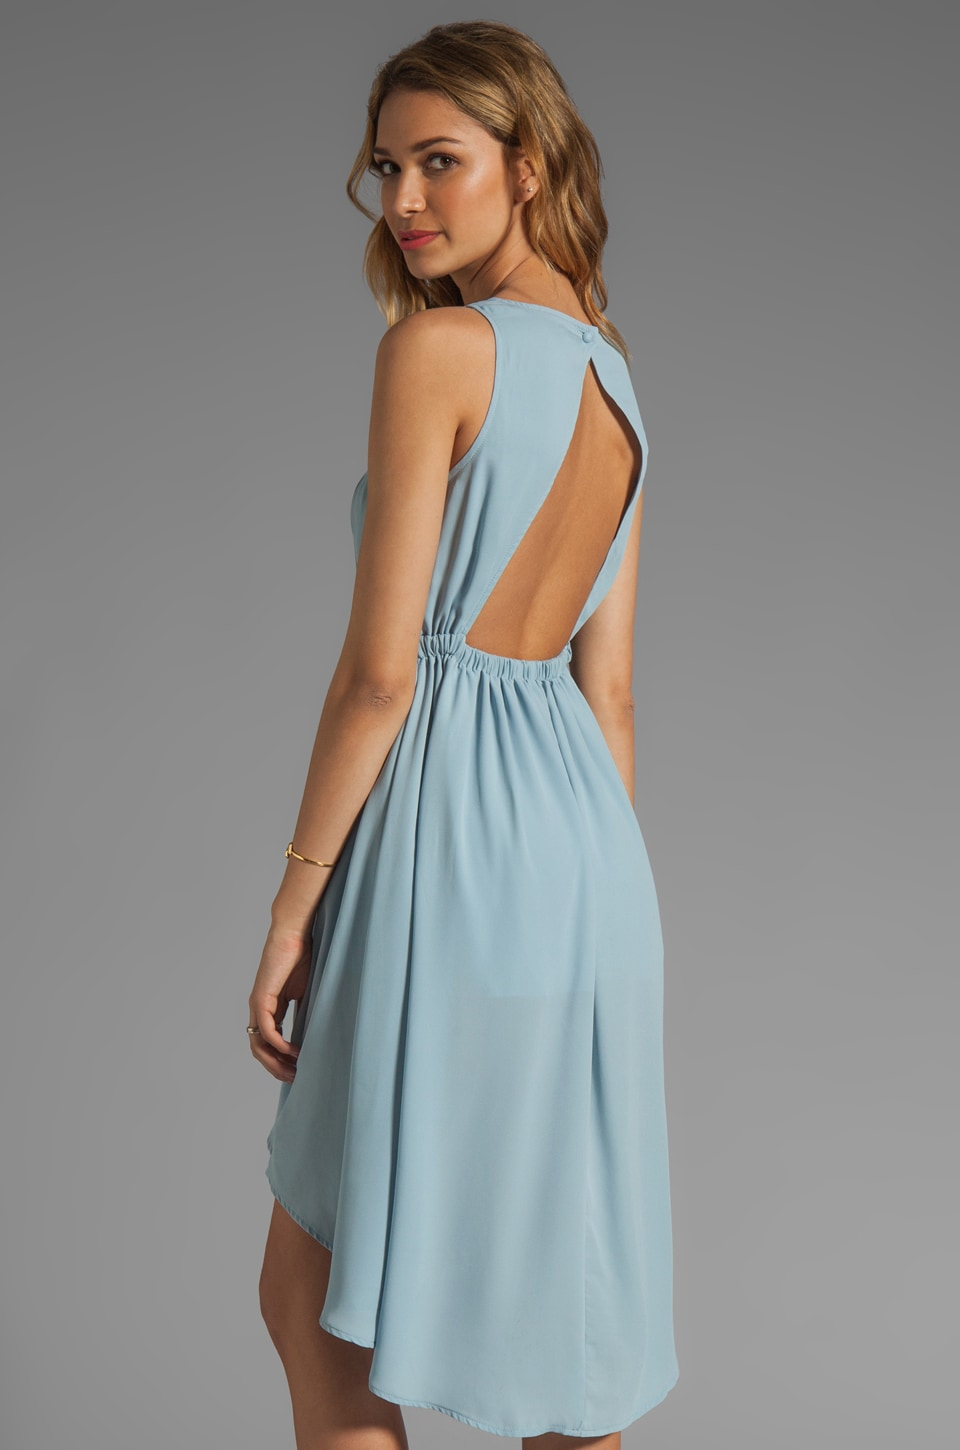 JARLO Allondra Dress in Pale Blue